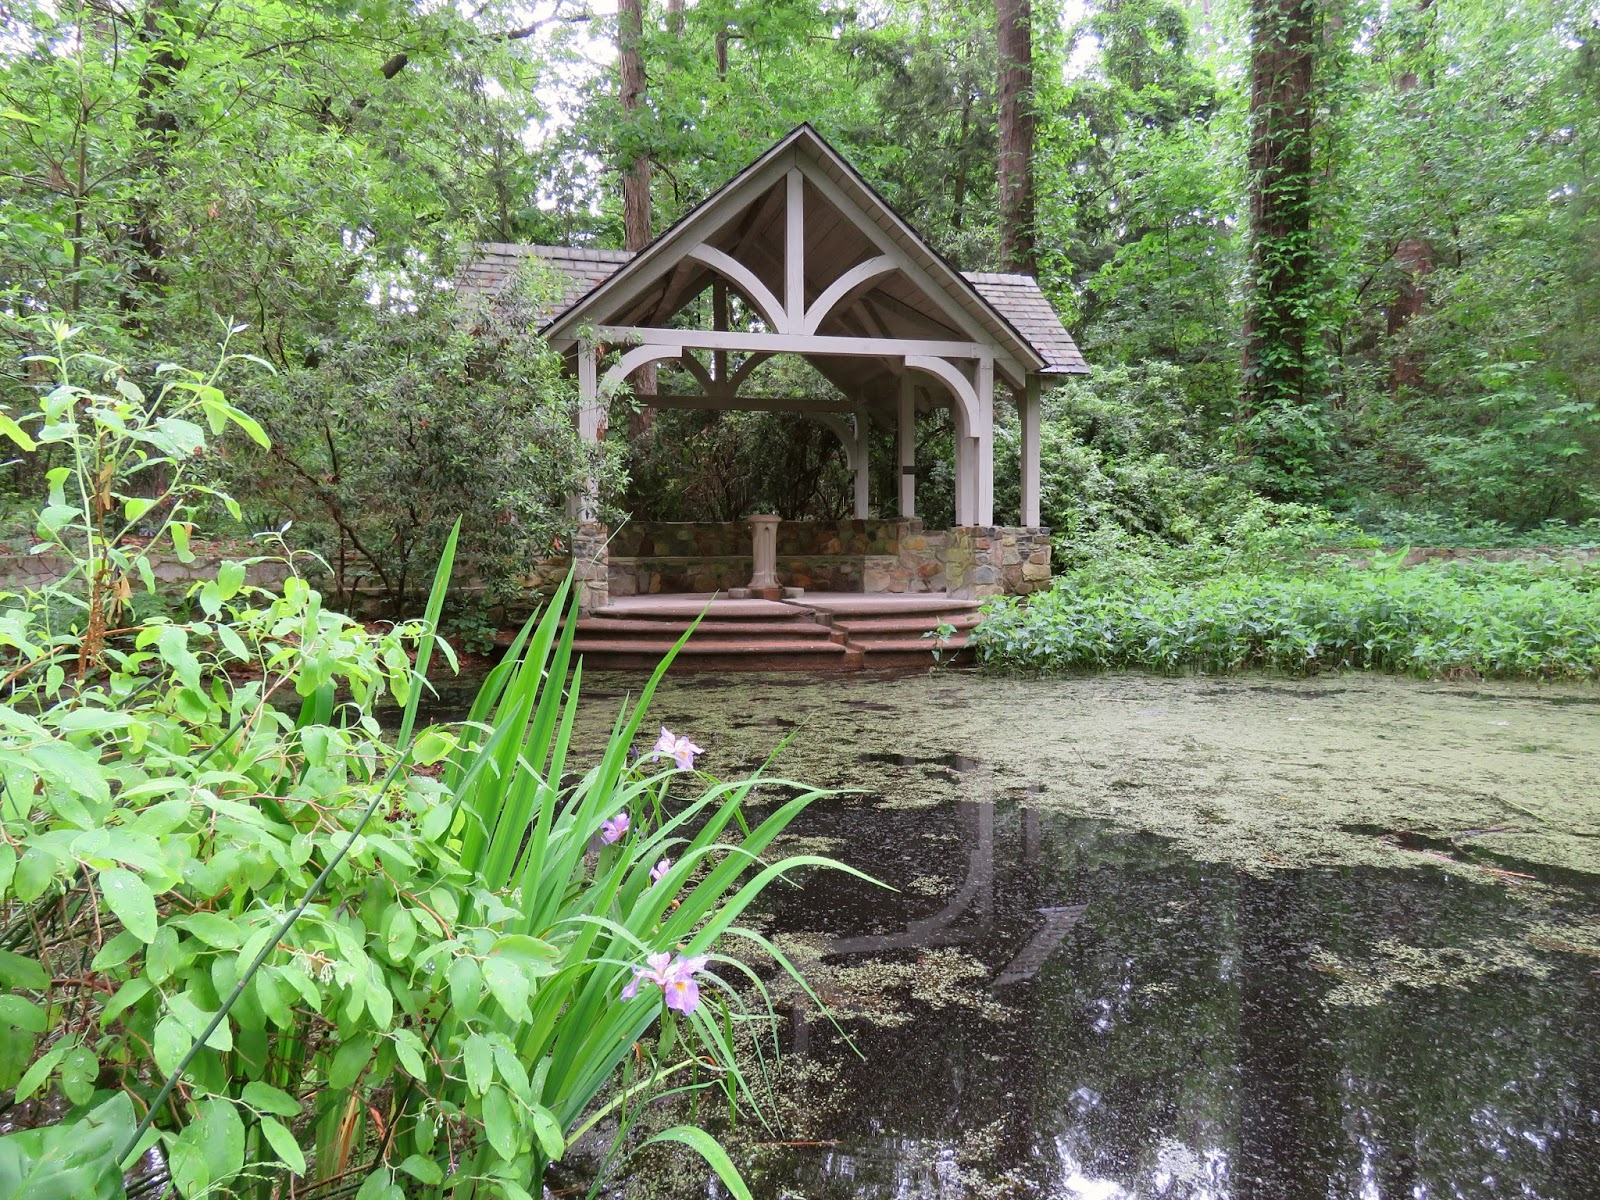 The blomquist garden of native plants a museum in the woods